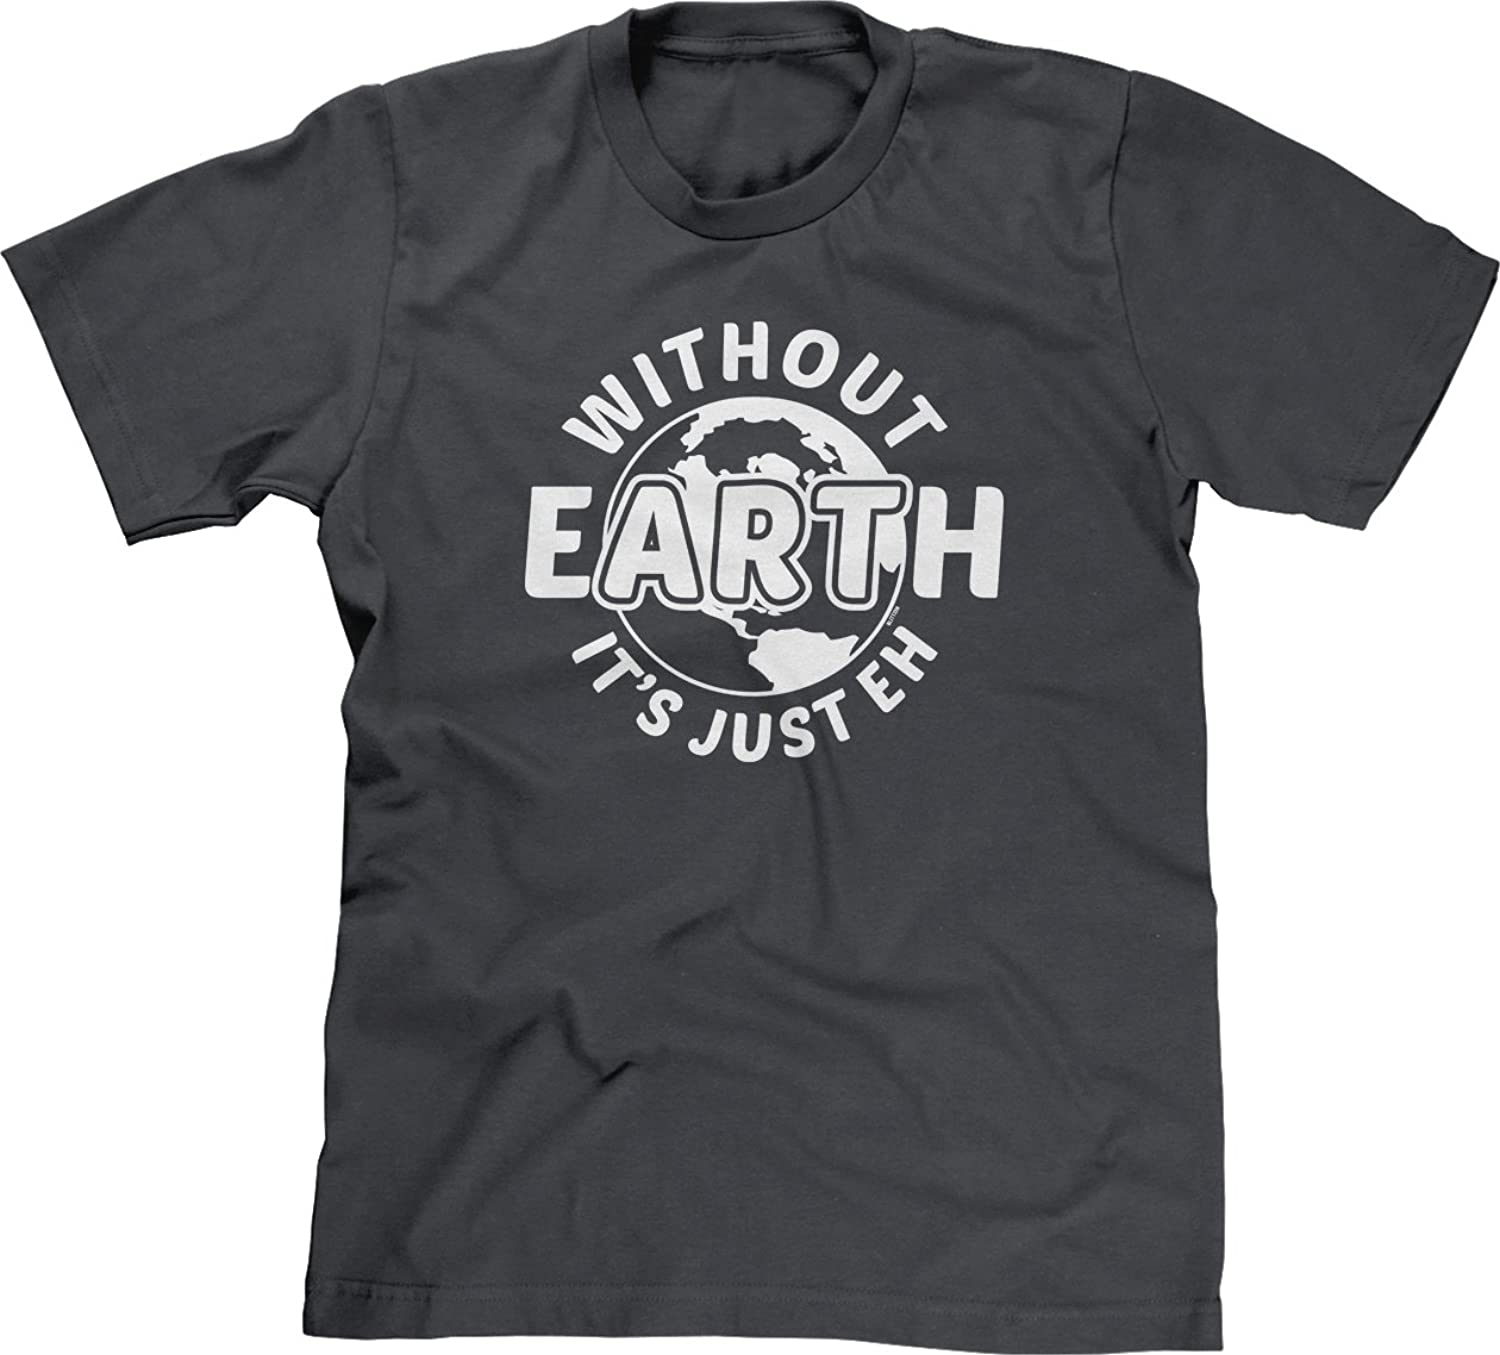 Blittzen Mens T-shirt Earth Without Art Is Just Eh